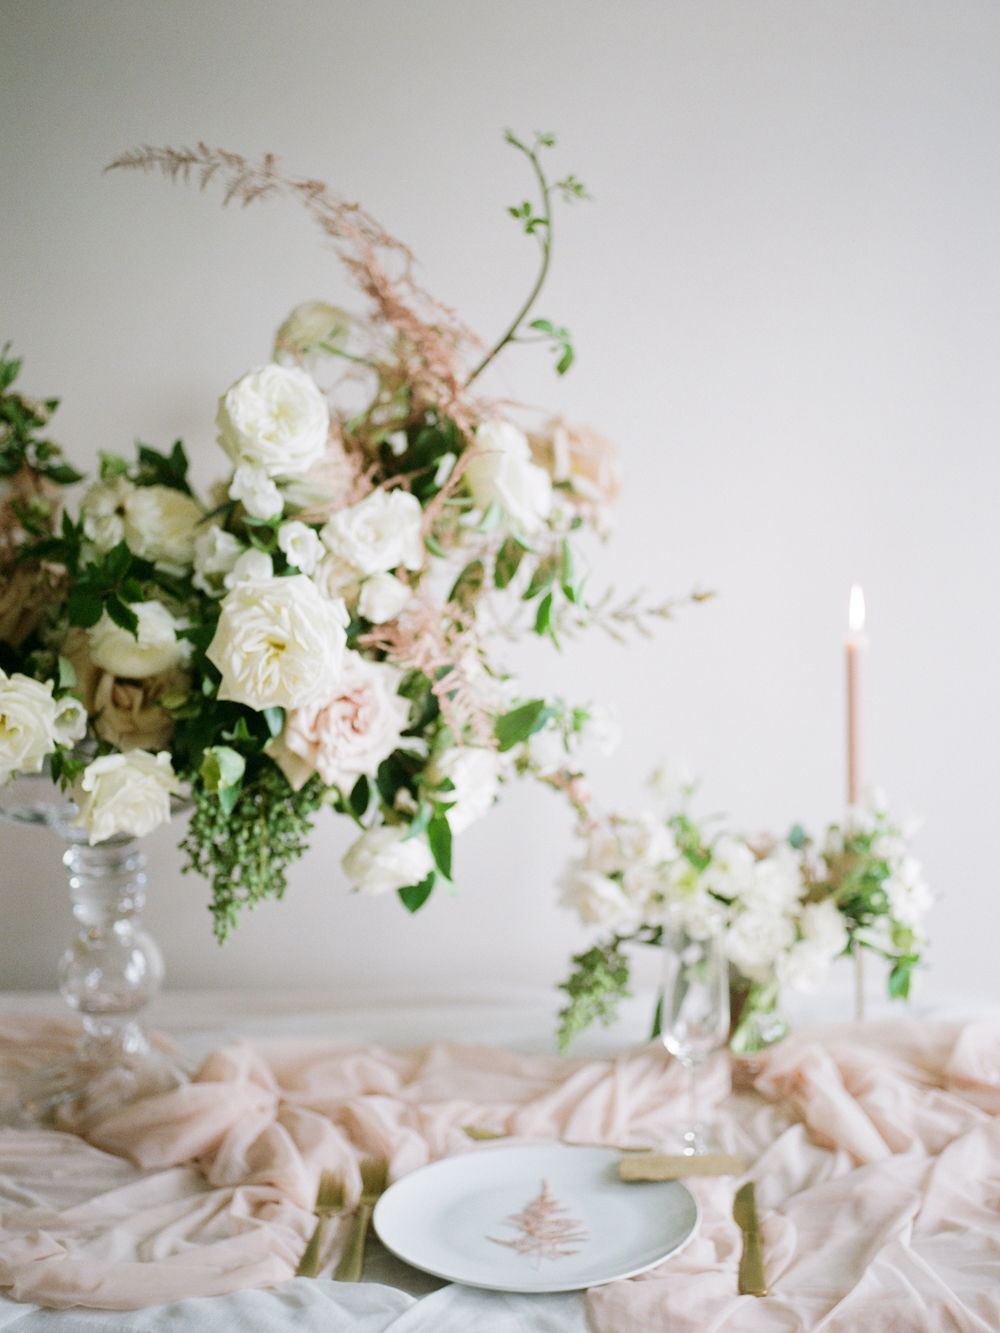 White winter wedding inspiration- houston wedding photographer-christine gosch - film photographer - elopement photographer